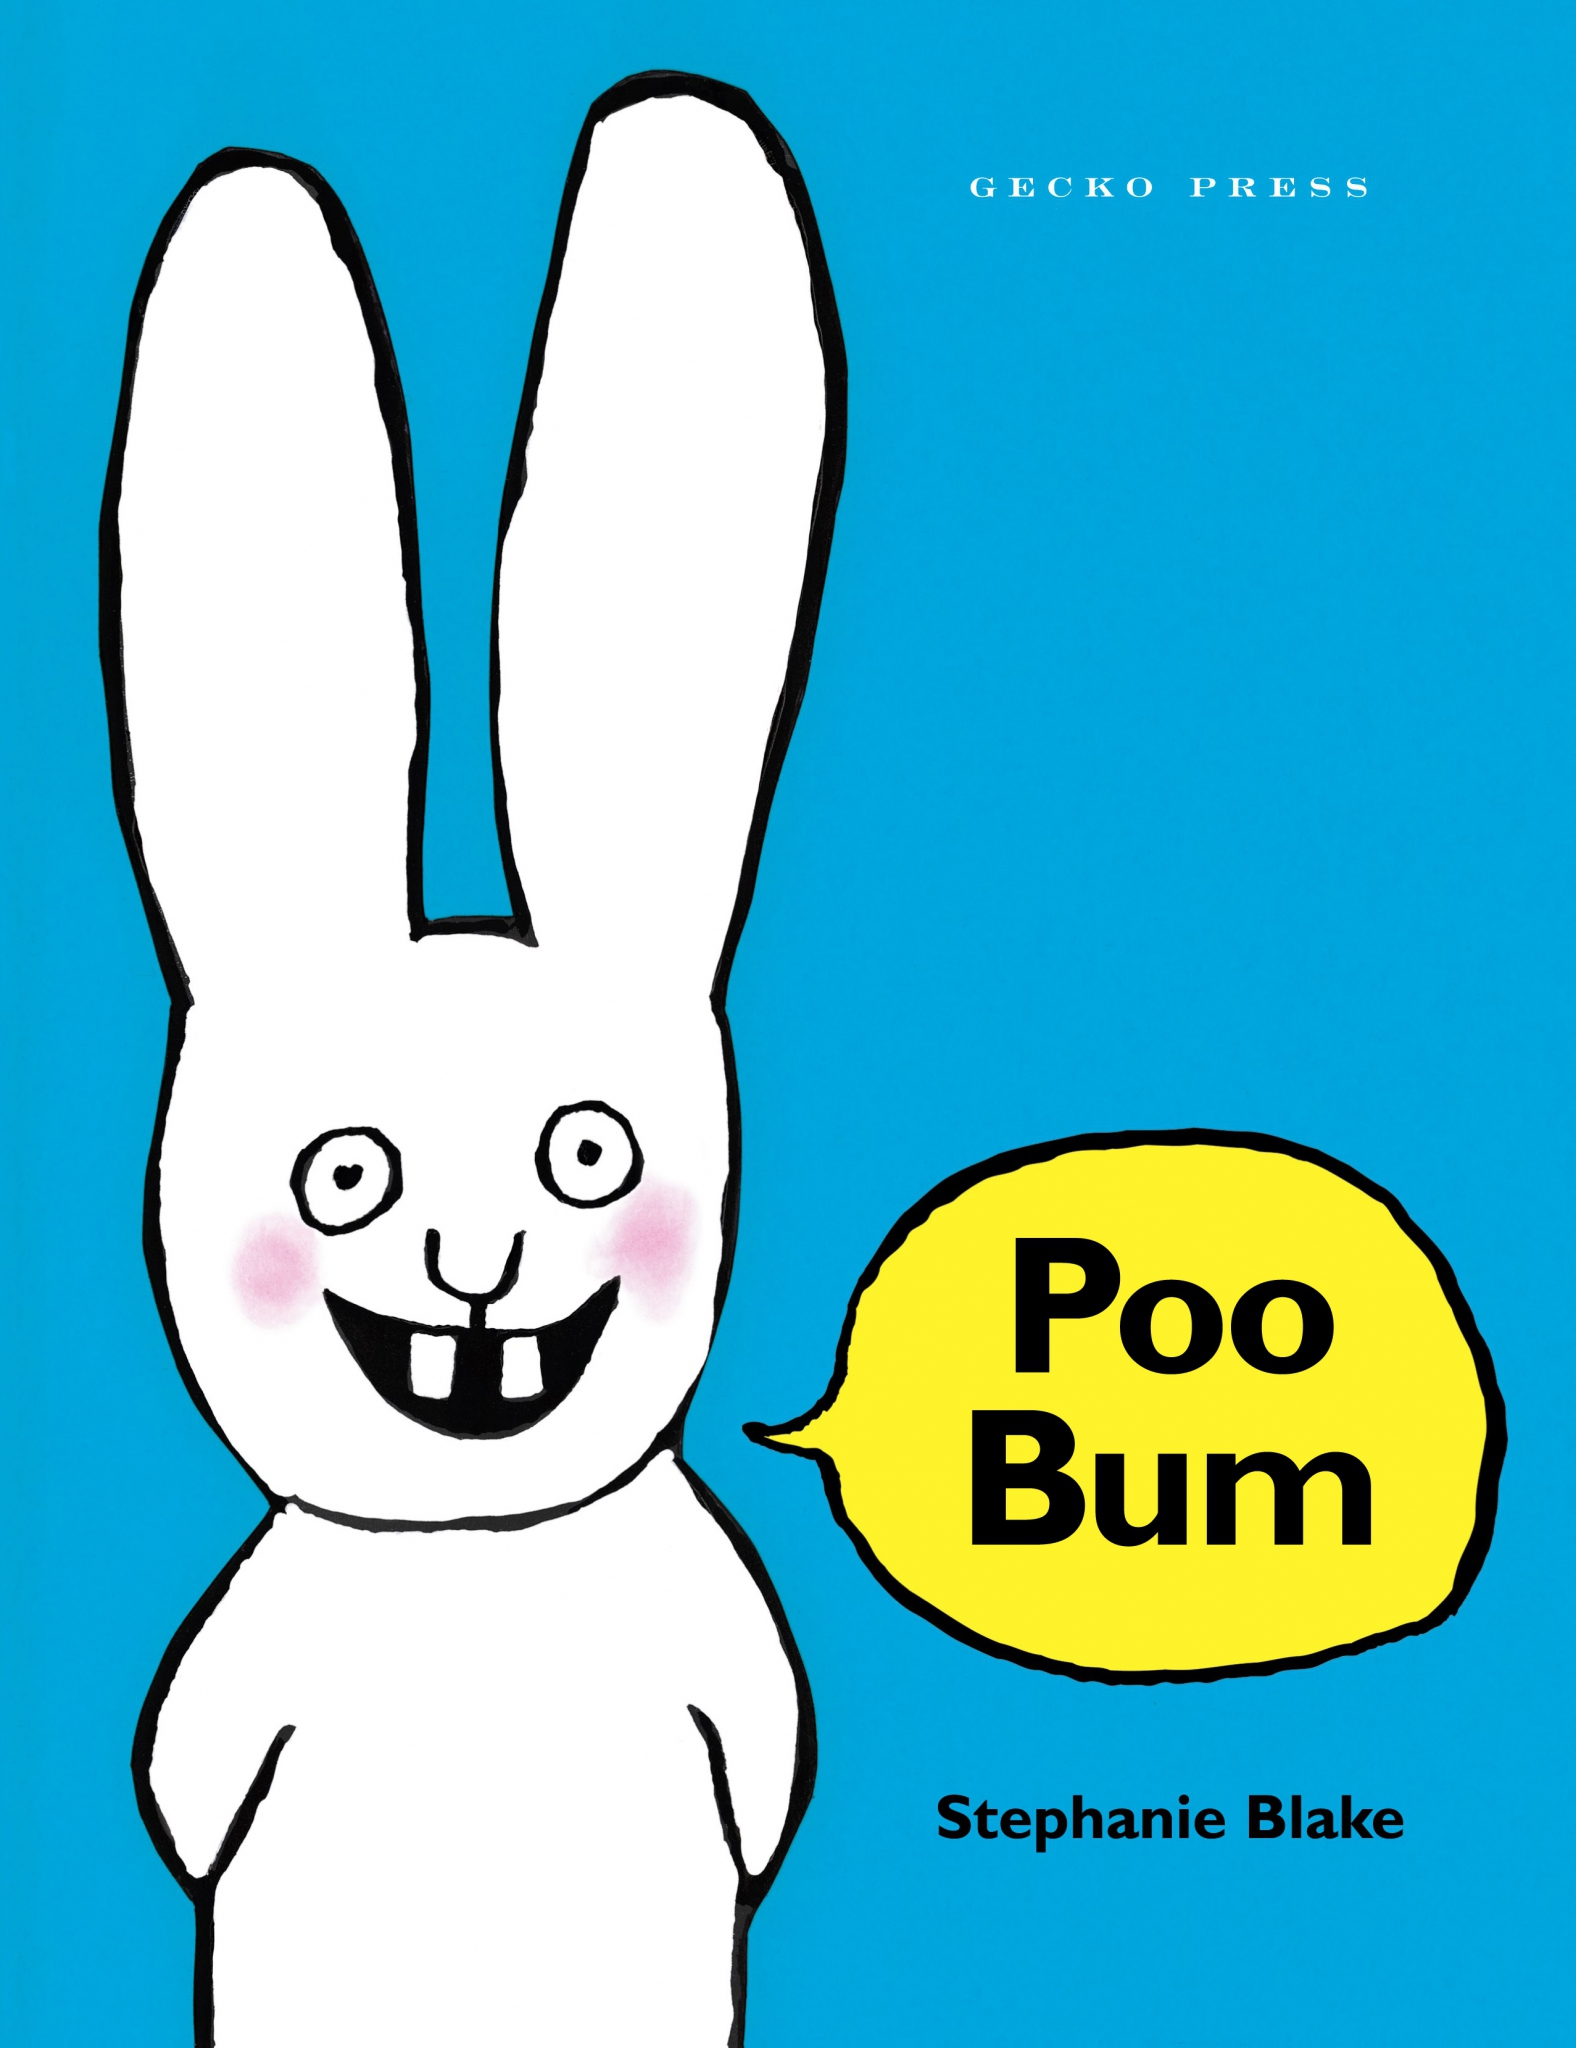 Poo bum book, Stephanie Blake, Book about a rabbit, picture book for kids